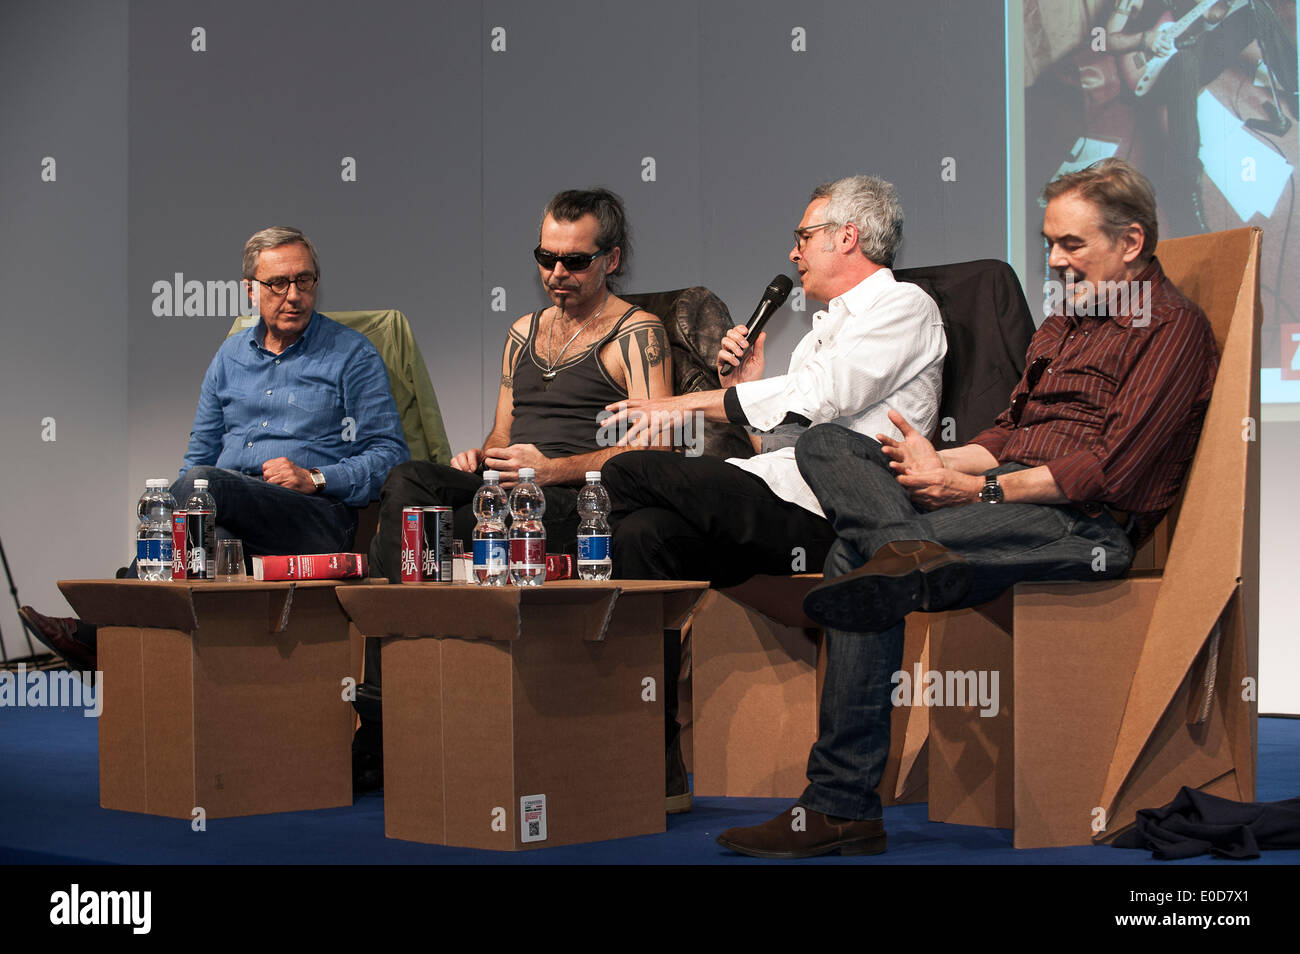 Turin, Piedmont, Italy. 09th May, 2014. Lingotto Fair 27th International Book Fair  9th May 2014.the Italian way, to rock between the stage and the talent Piero Pelù. The Dictionary of Rock Zanichelli rewards Piero Pelù, rock star and judge of the television program, The Voice( italy ). intervened, Enzo Gentile, Mauro Pagani and Alberto Tonti Credit:  Realy Easy Star/Alamy Live News - Stock Image